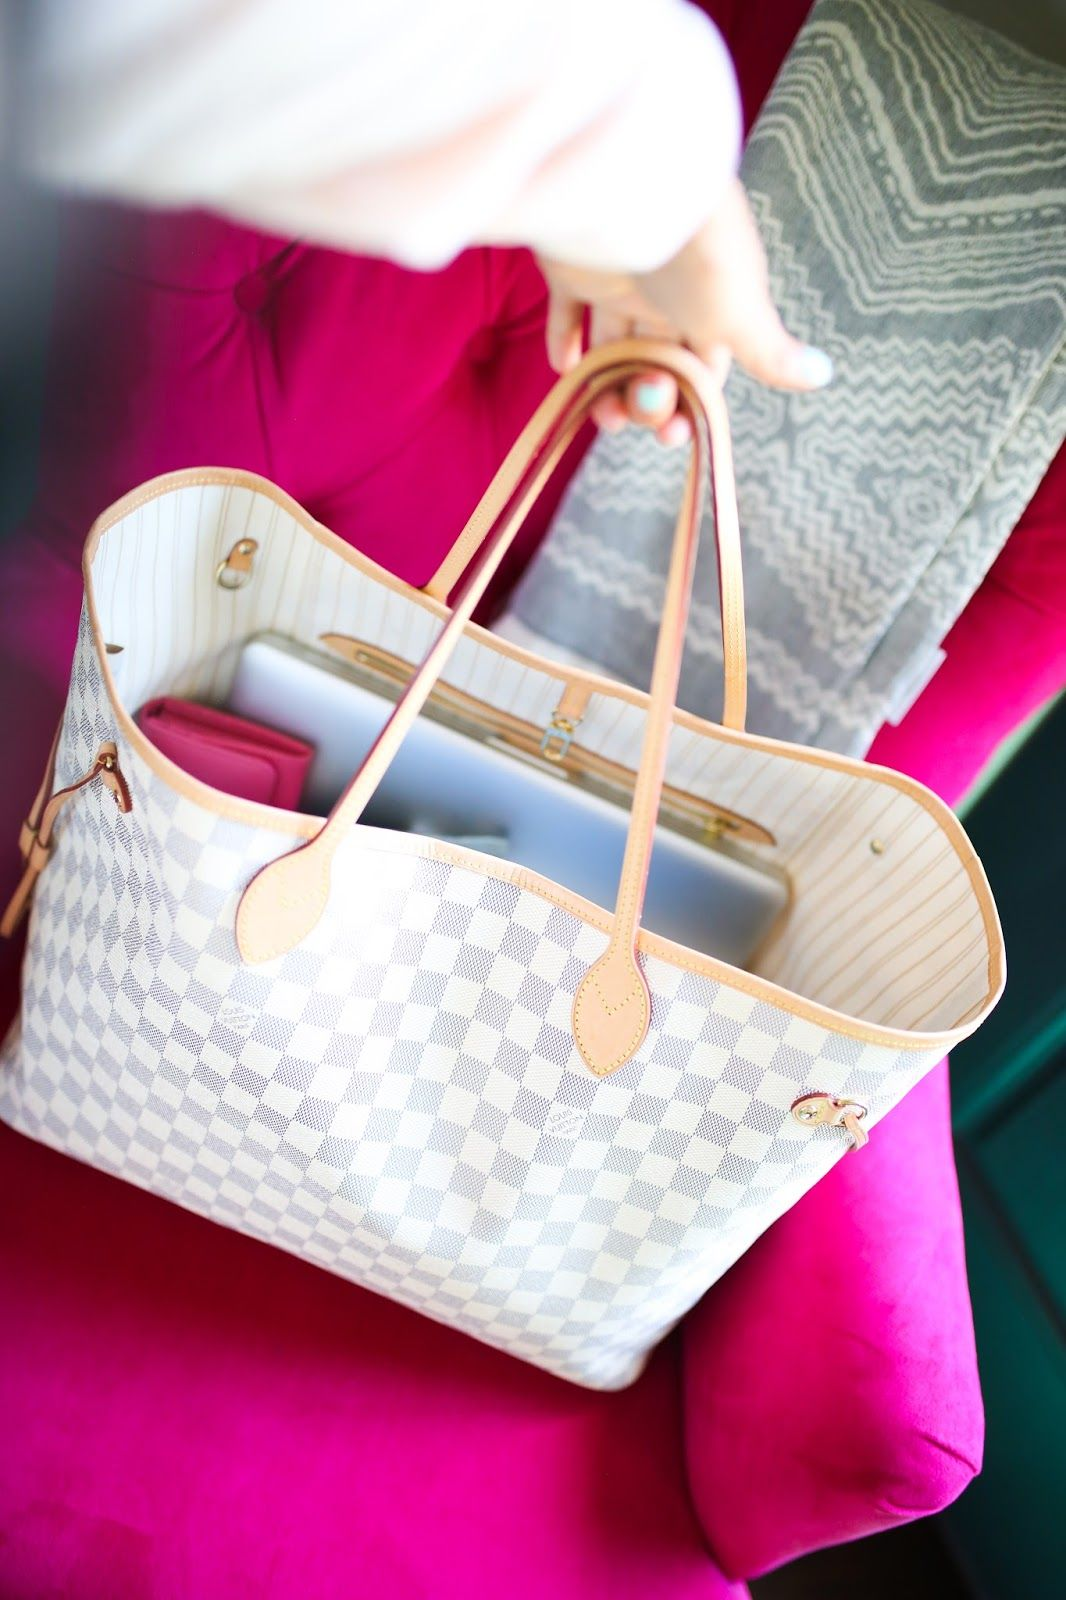 0b004f06b06 Louis Vuitton Neverfull Damier, Neverfull Gm, Fashion Bags, Women s  Fashion, Fashion Trends